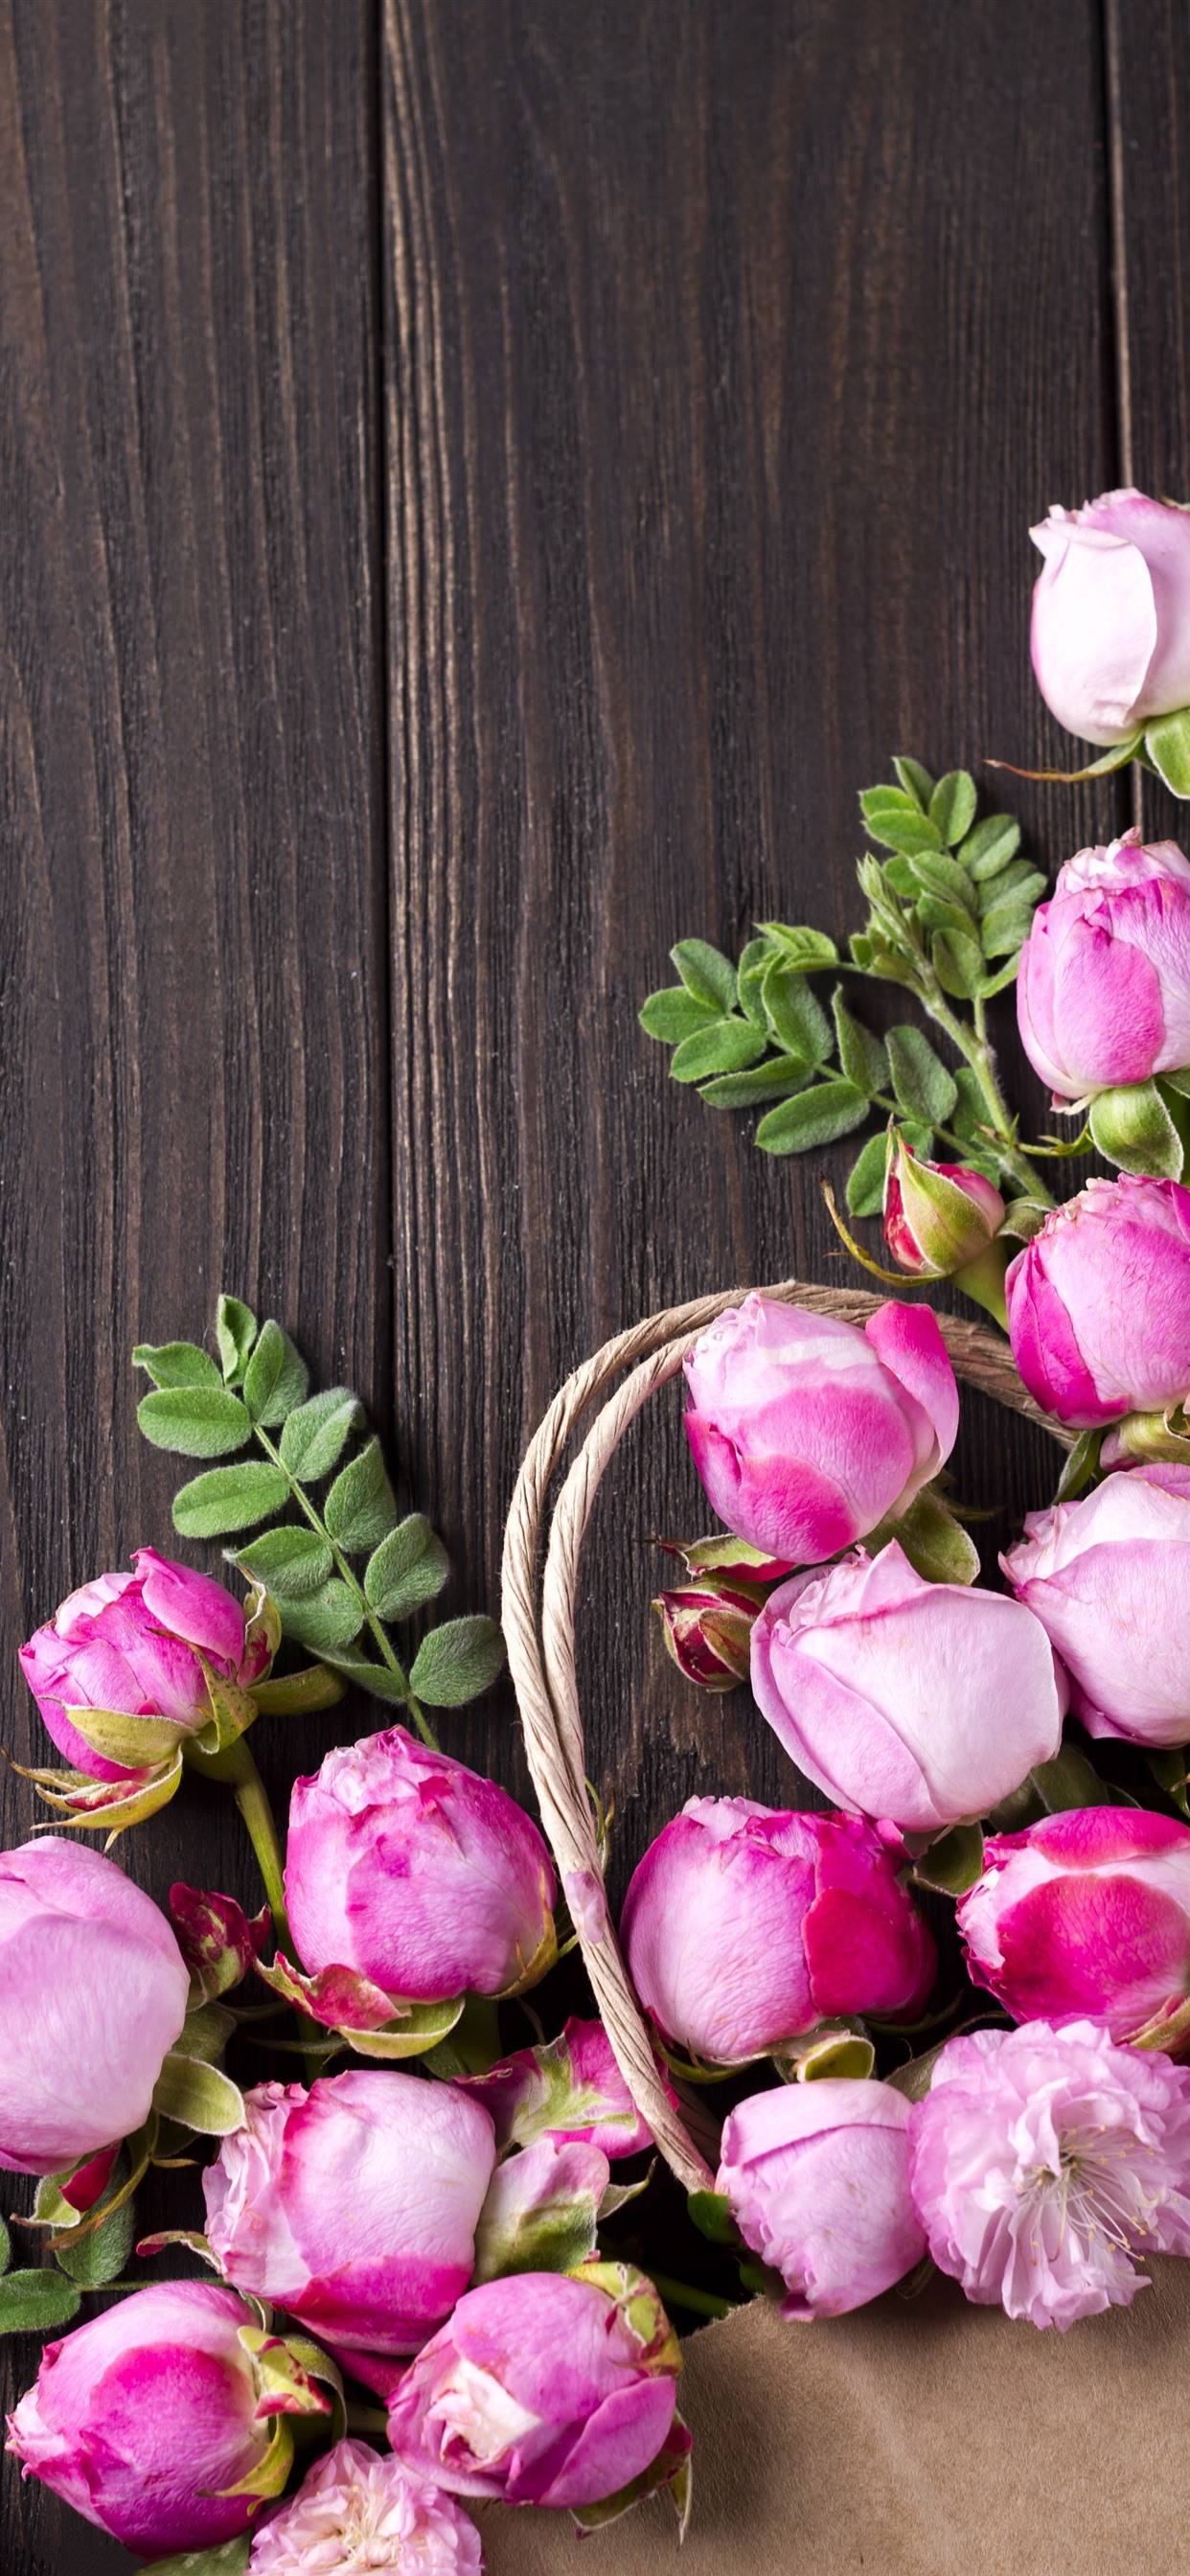 Pink Roses Flowers Wood Board 1242x2688 Iphone Xs Max Wallpaper